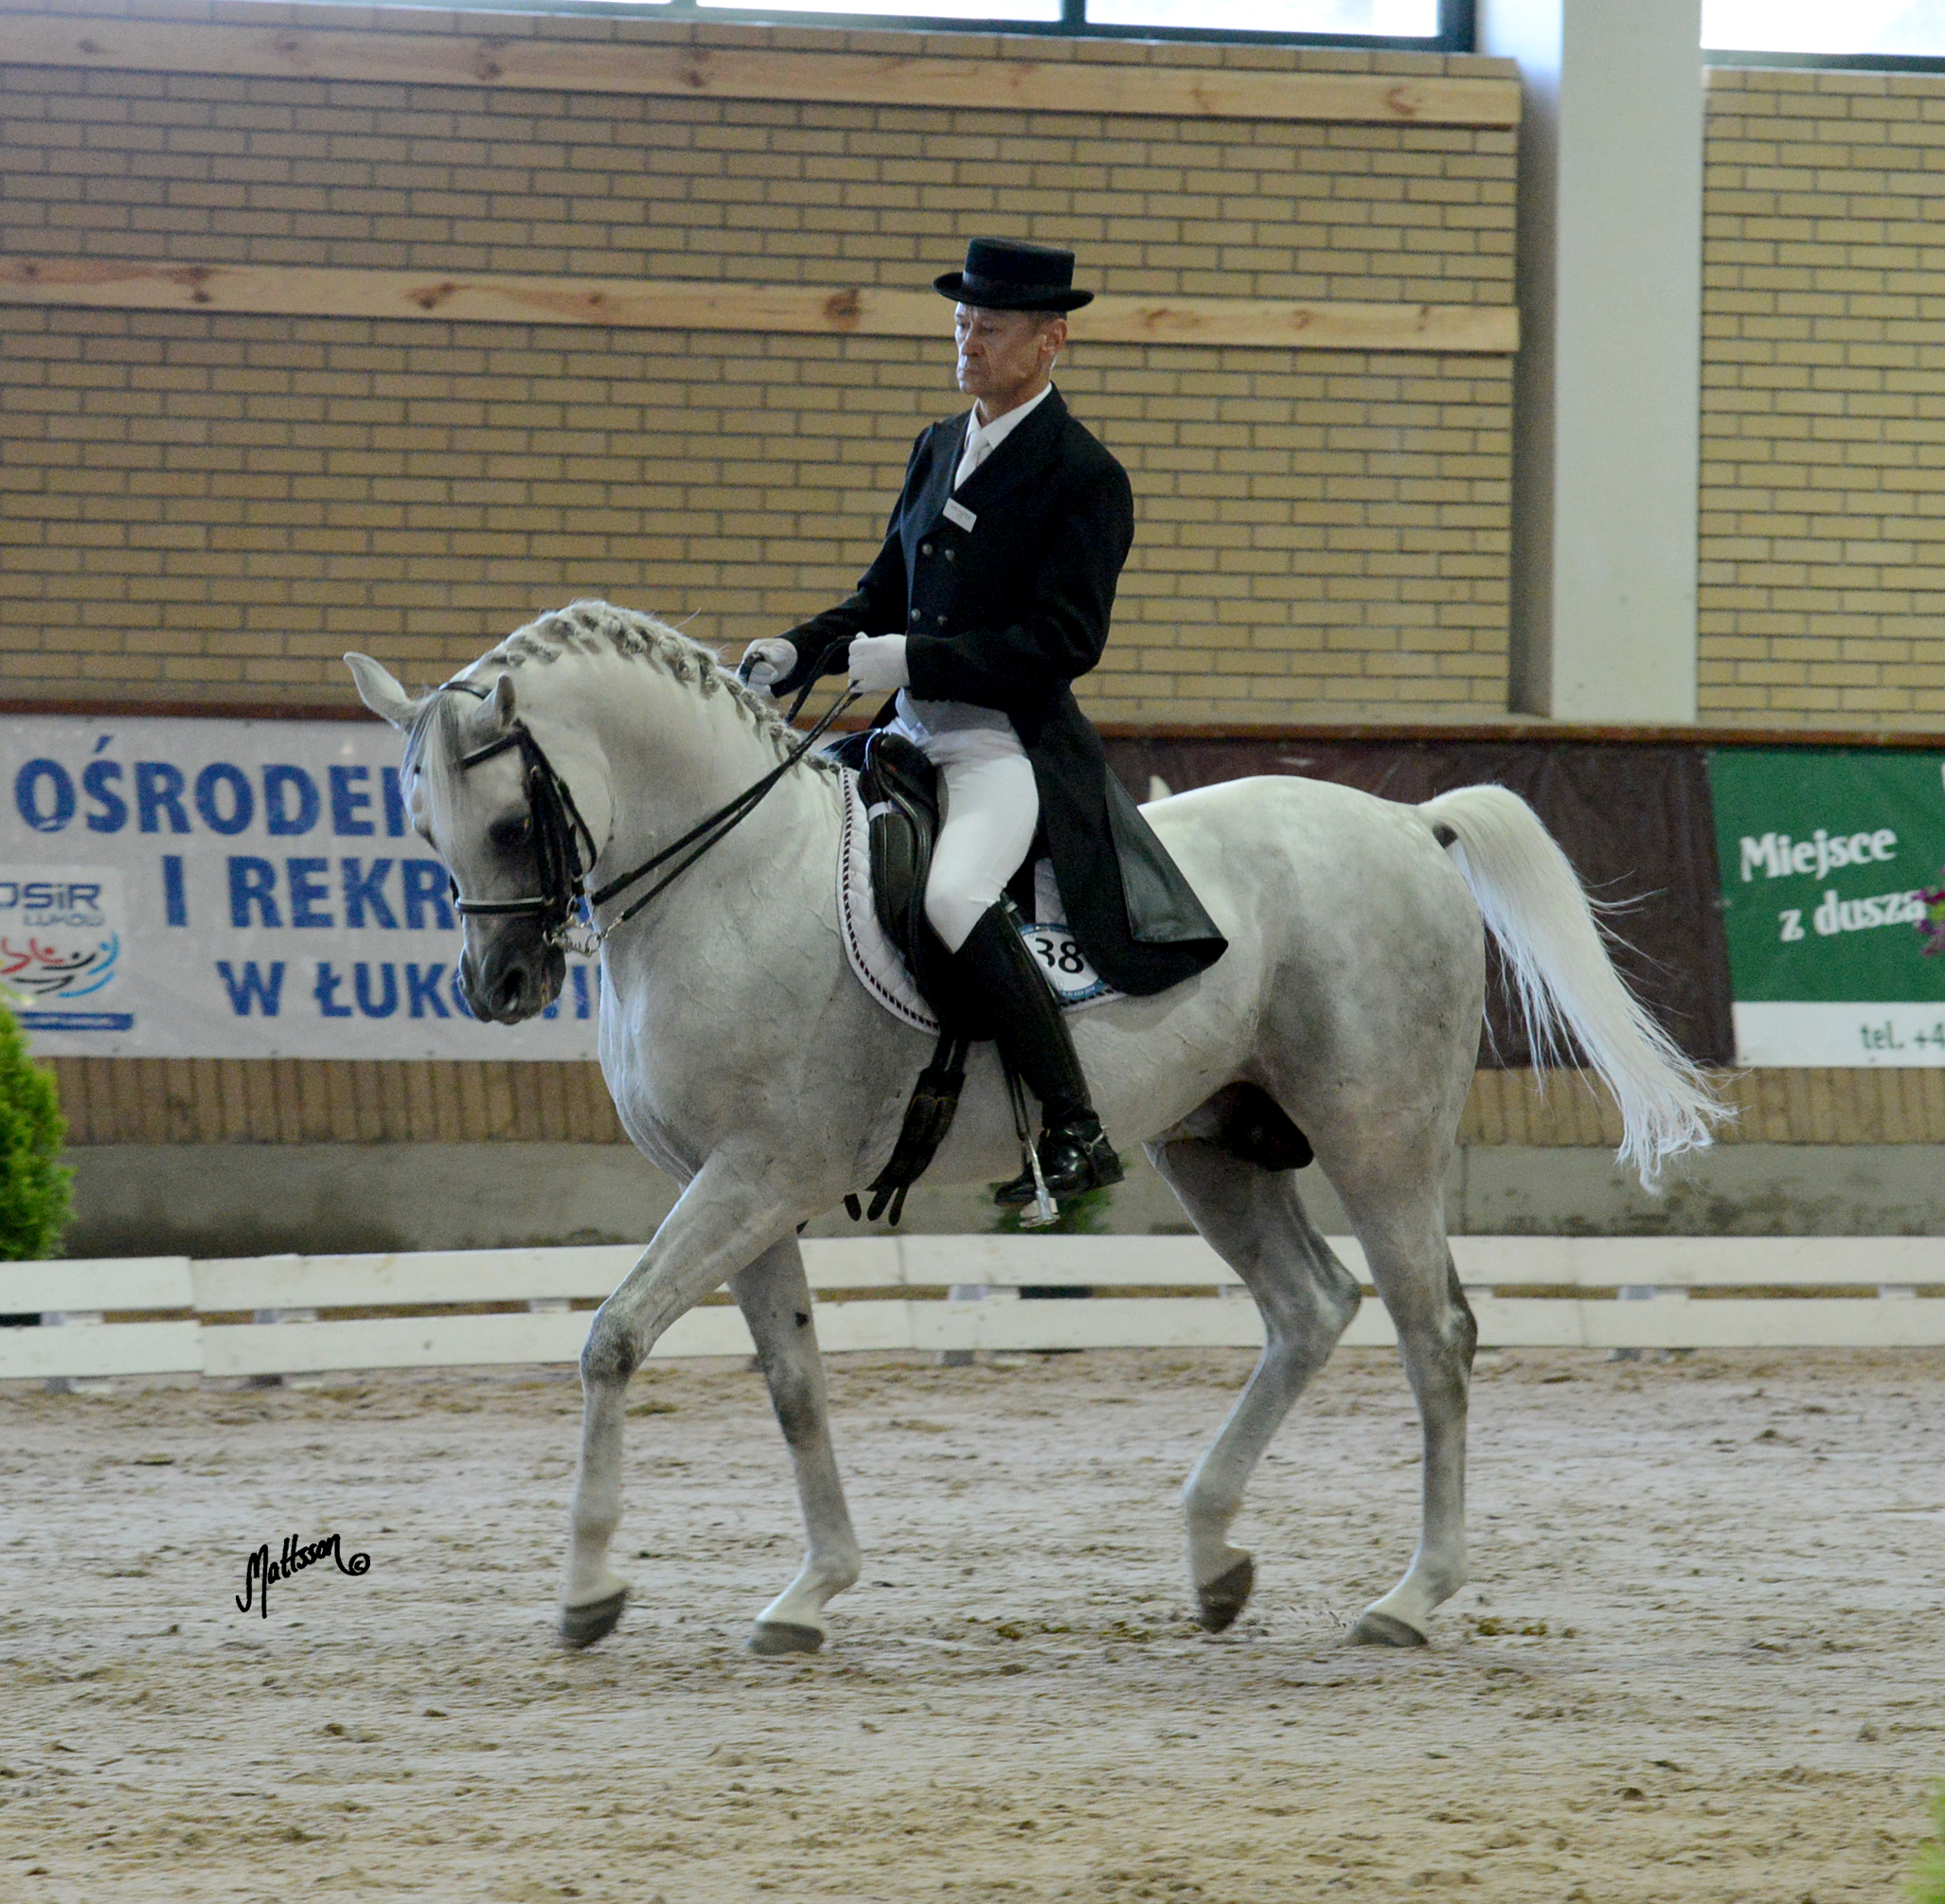 Grafik during the European Arabian Sporthorse Championship in 2014 with Krzysztof Cyra